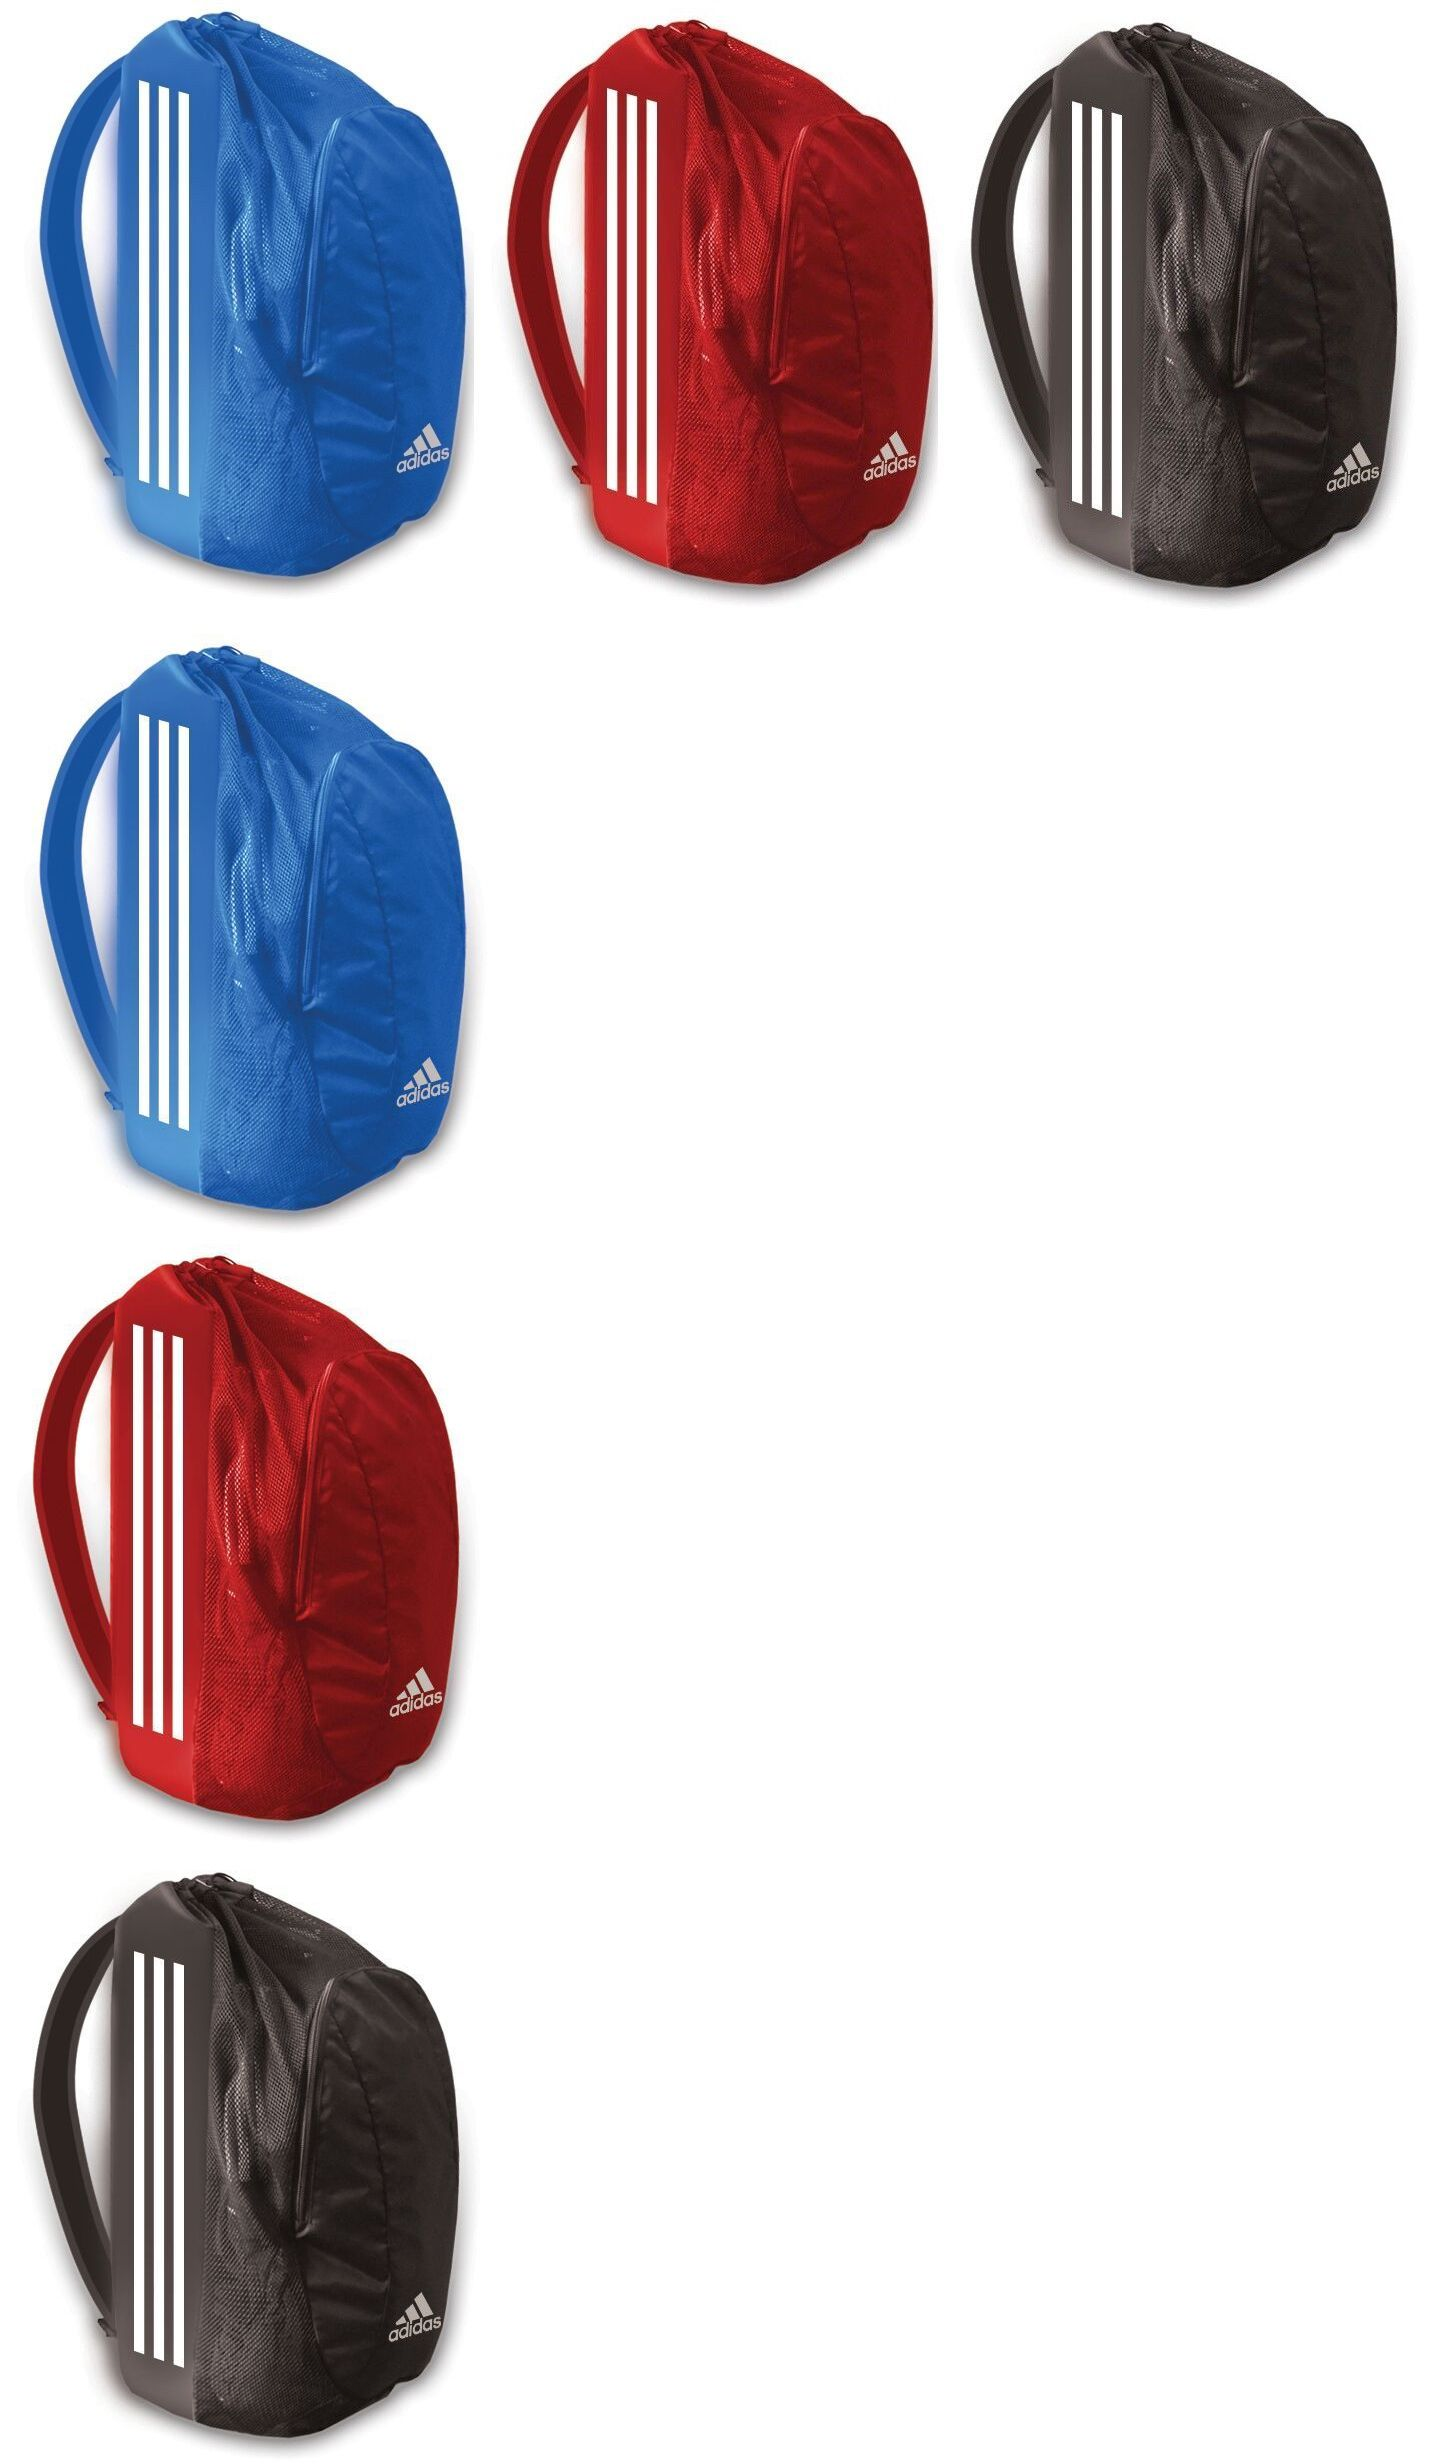 Accessories 36306 Adidas Wrestling Gear Bag 2 0 Multi Purpose It Now Only 34 99 On Ebay